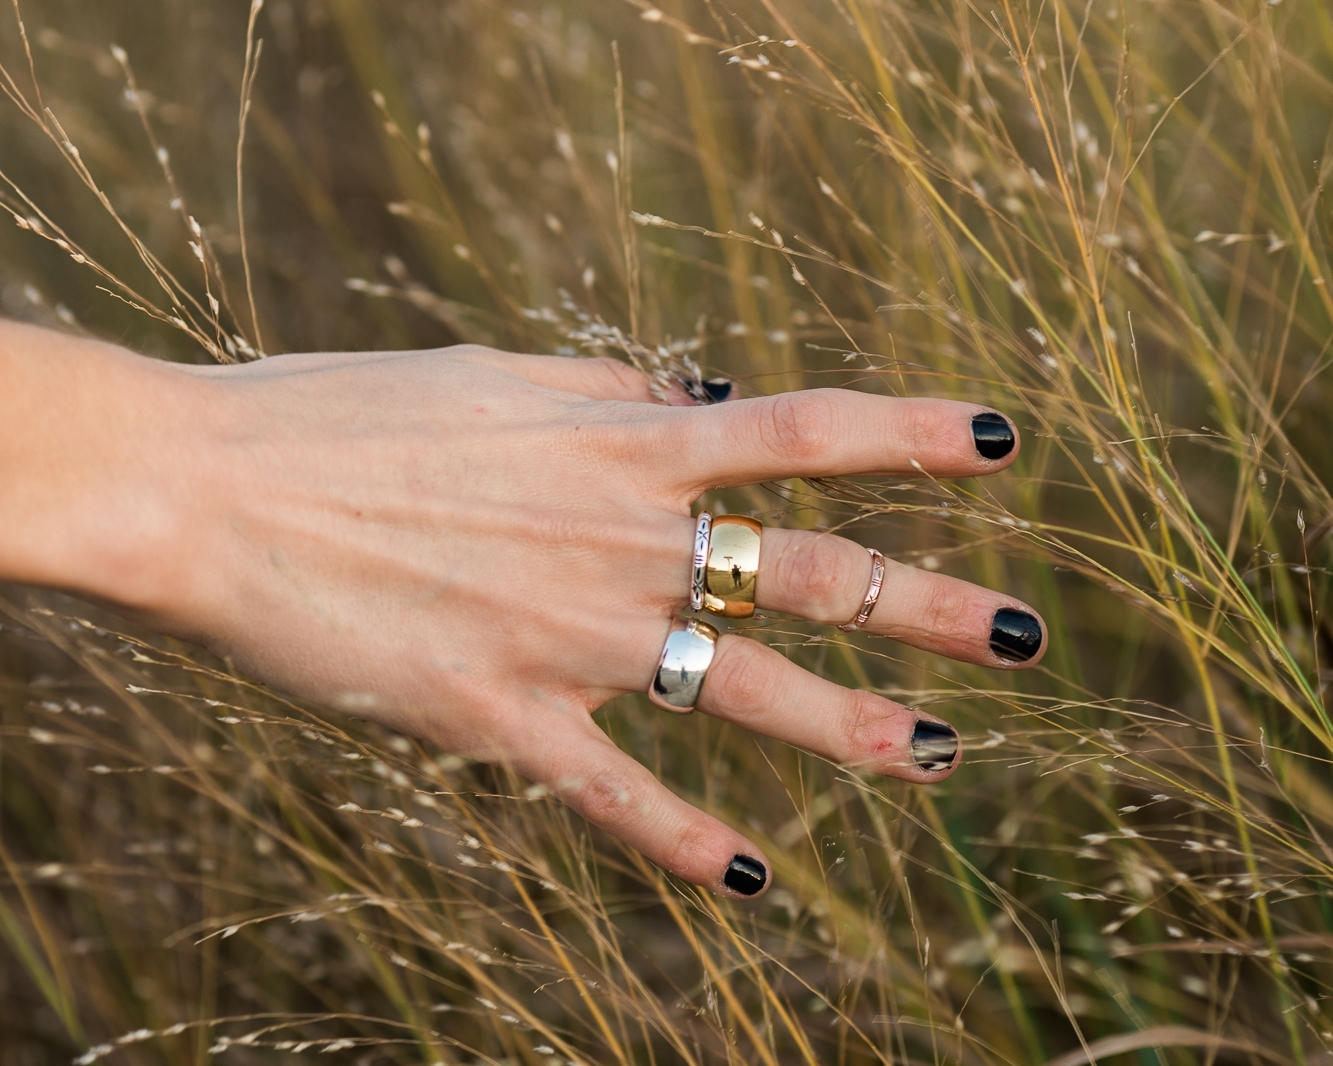 Renegade Ring - SIERRA WINTER JEWELRYHad my eye on this baby for a couple years. A girl can dream.CHECK IT OUT